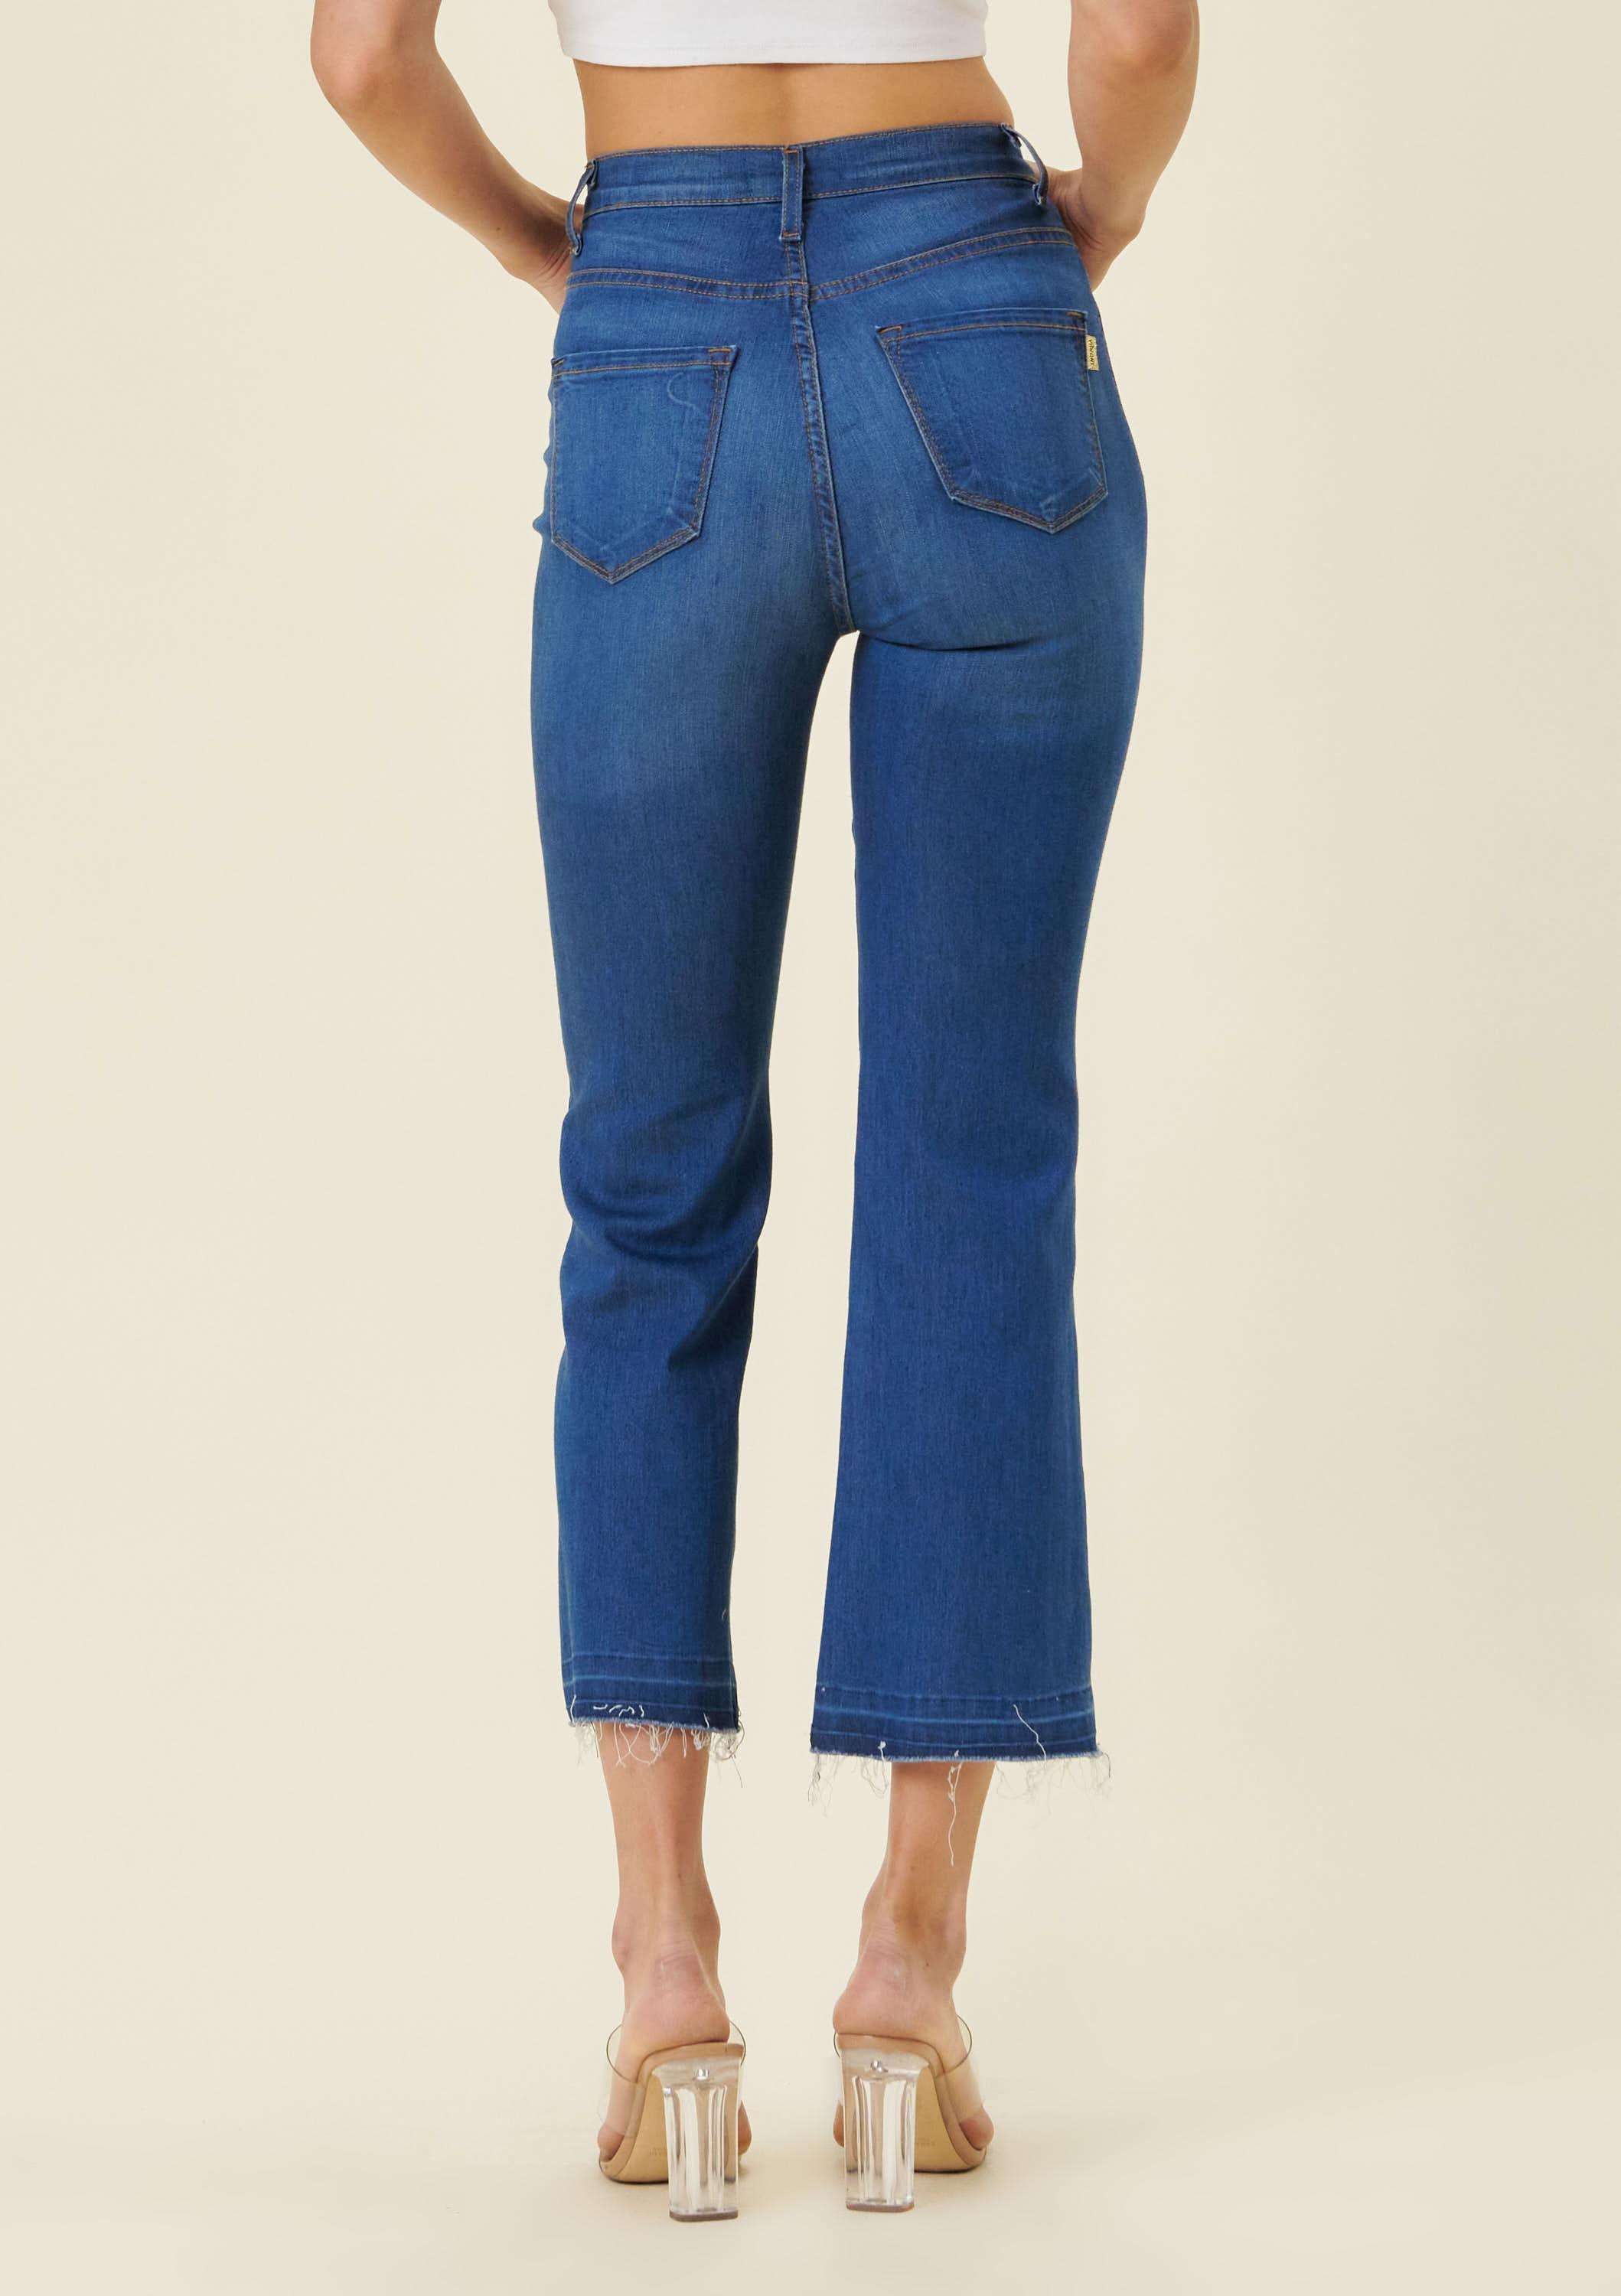 Lany Ankle Jeans